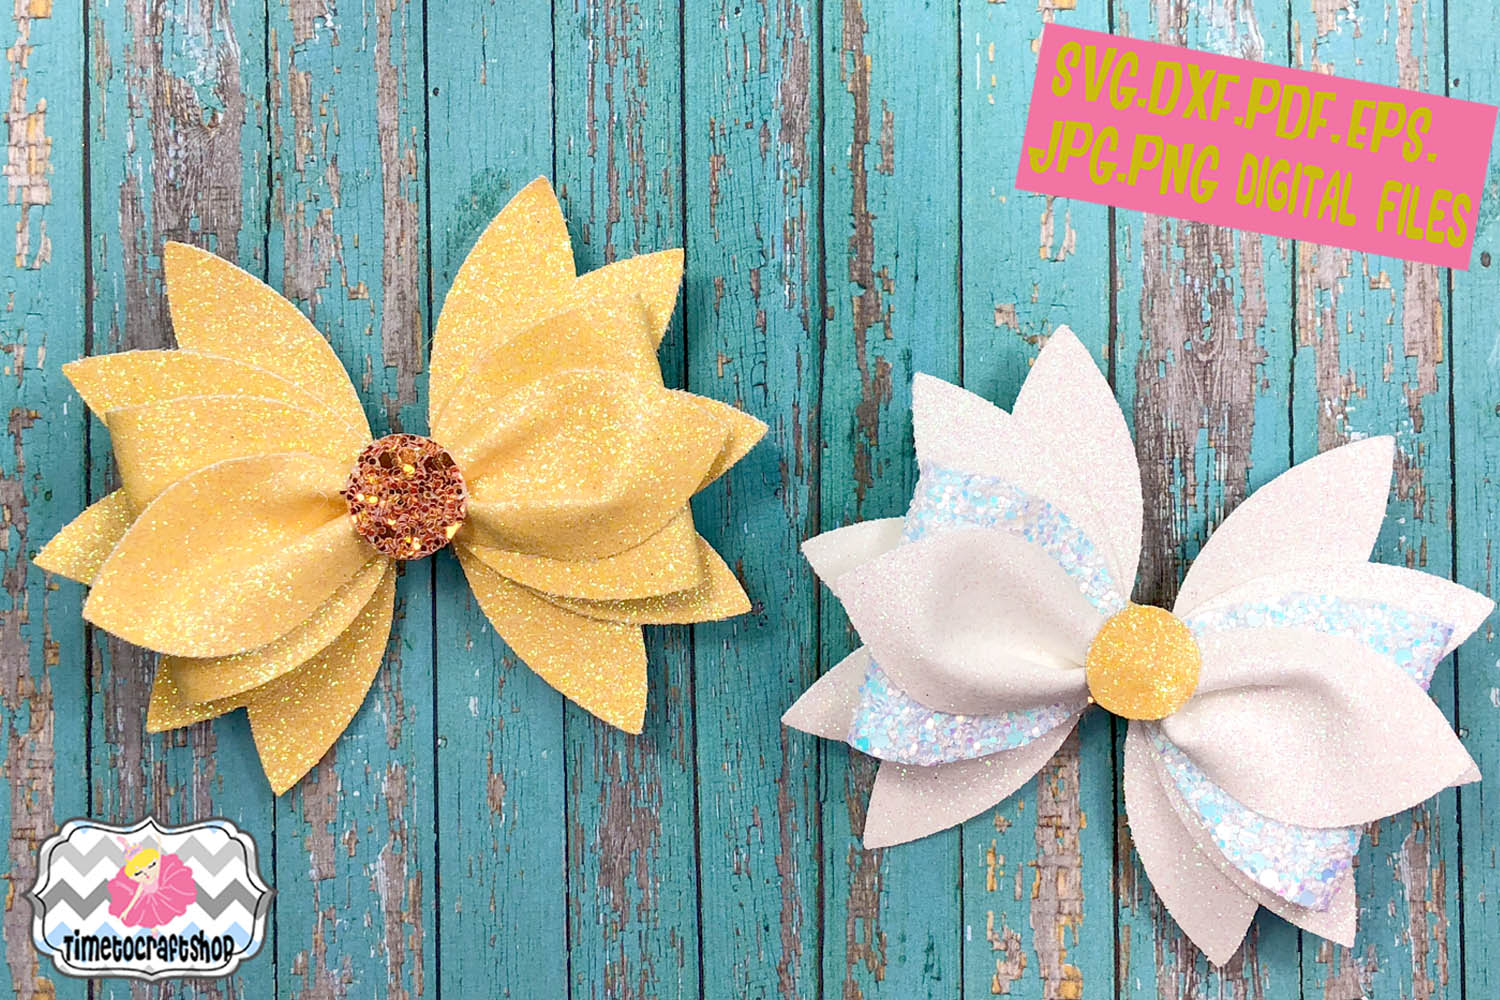 SVG, PNG, DXF, PDF, JPEG Flower Hair Bow Template Bundle example image 5